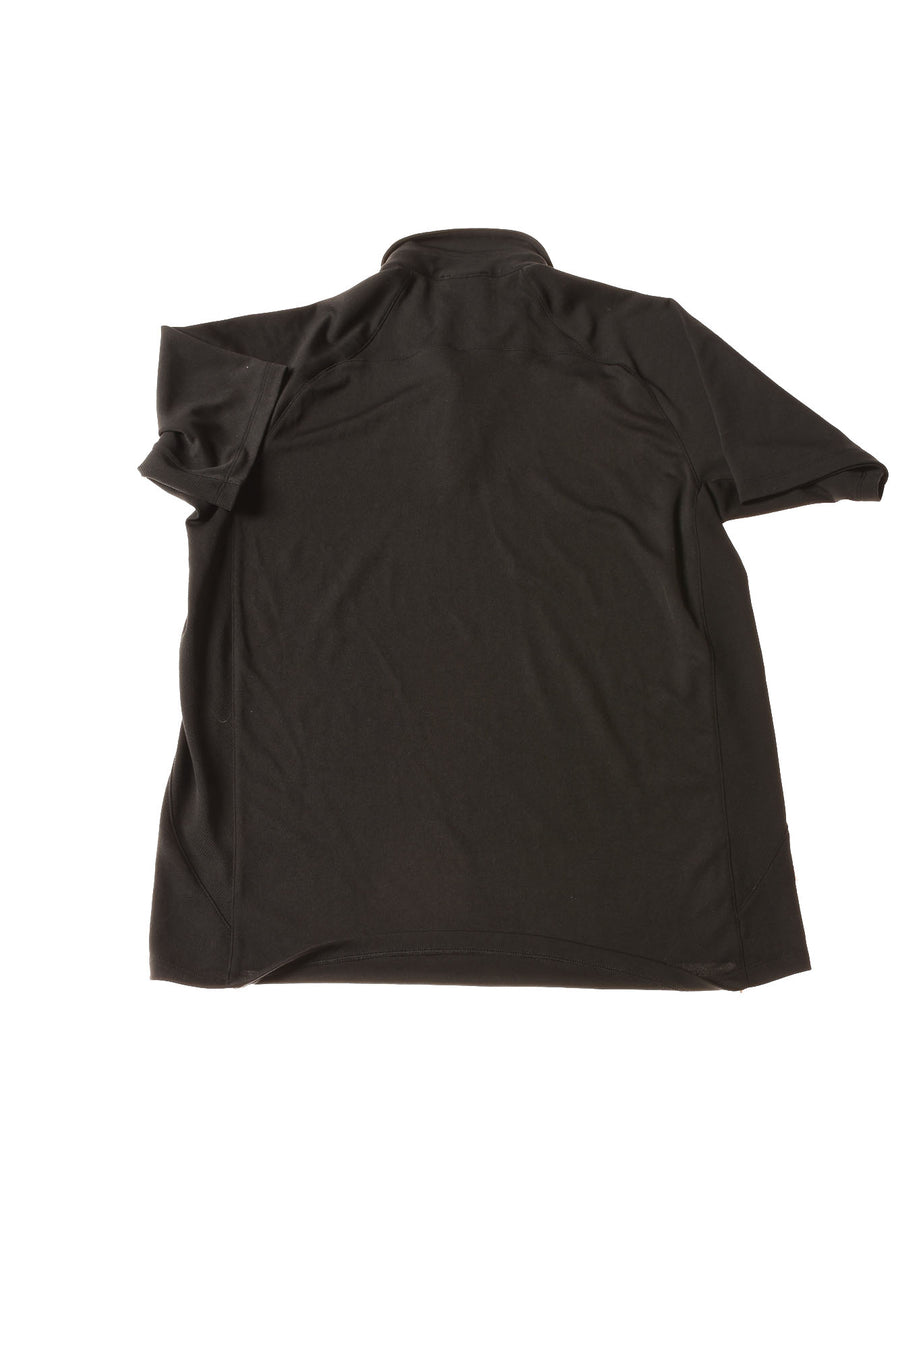 USED The North Face Men's Shirt Large Black